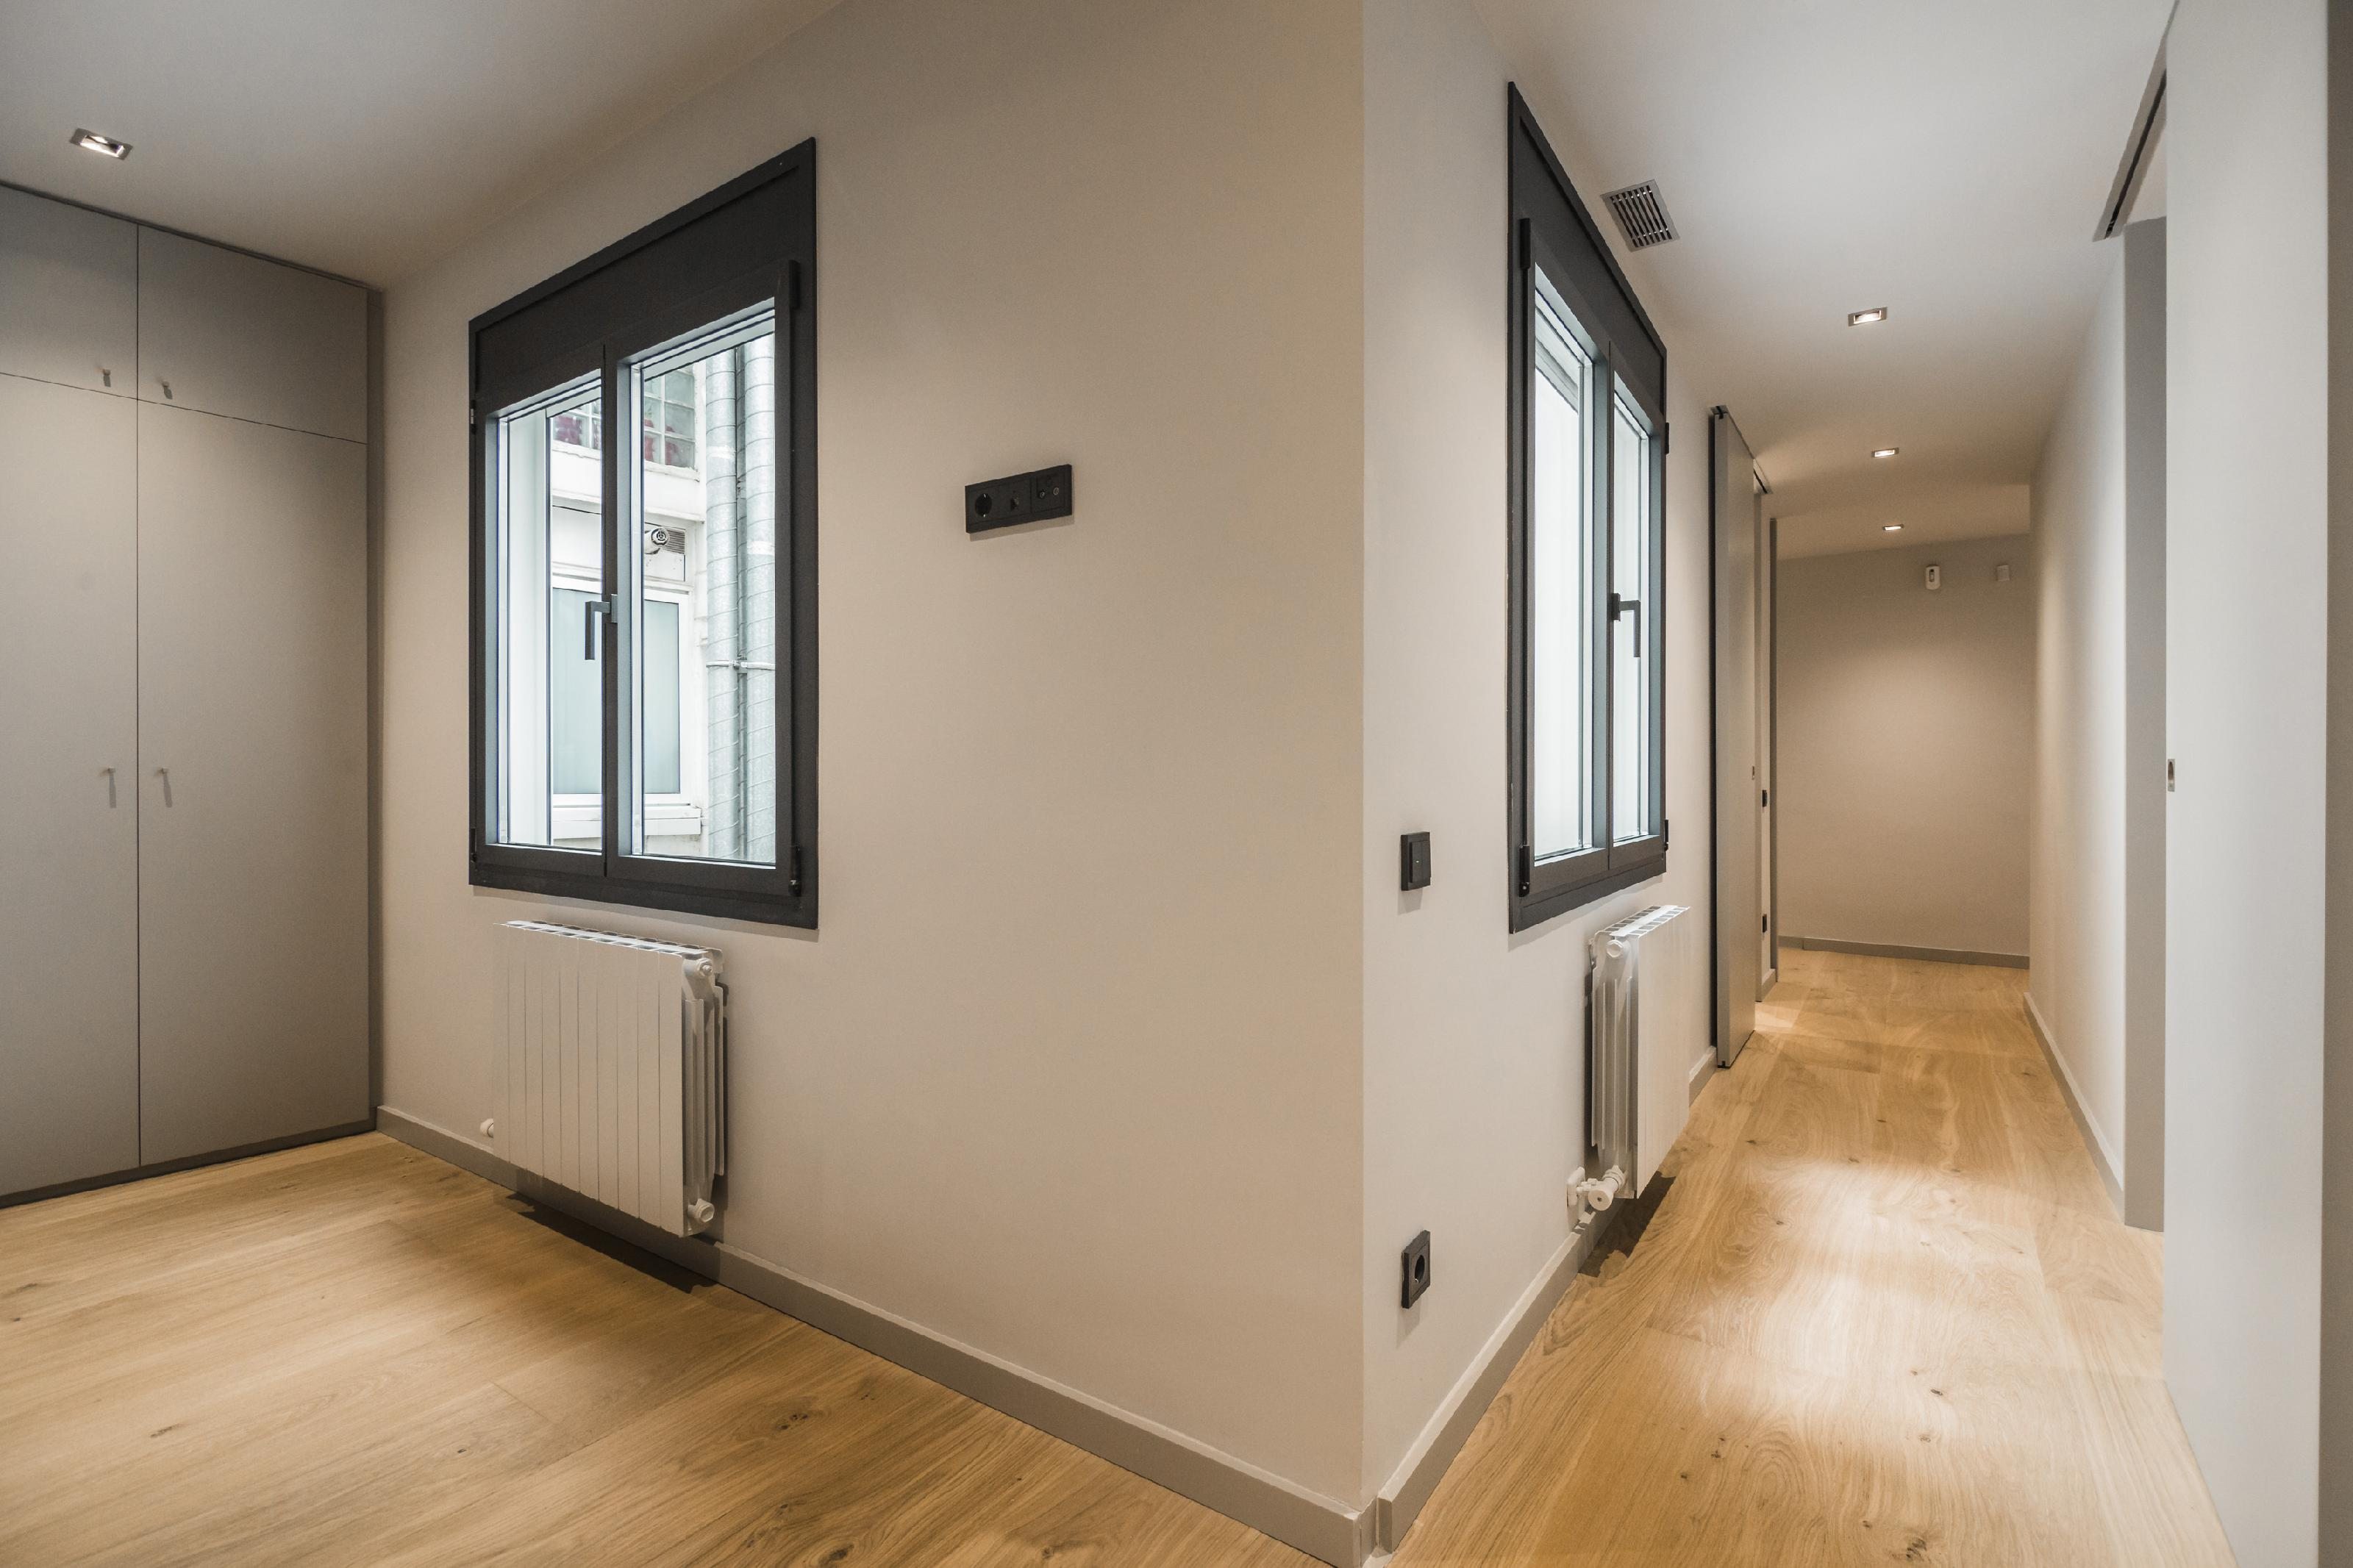 223979 Apartment for sale in Sarrià-Sant Gervasi, Sant Gervasi-Galvany 2